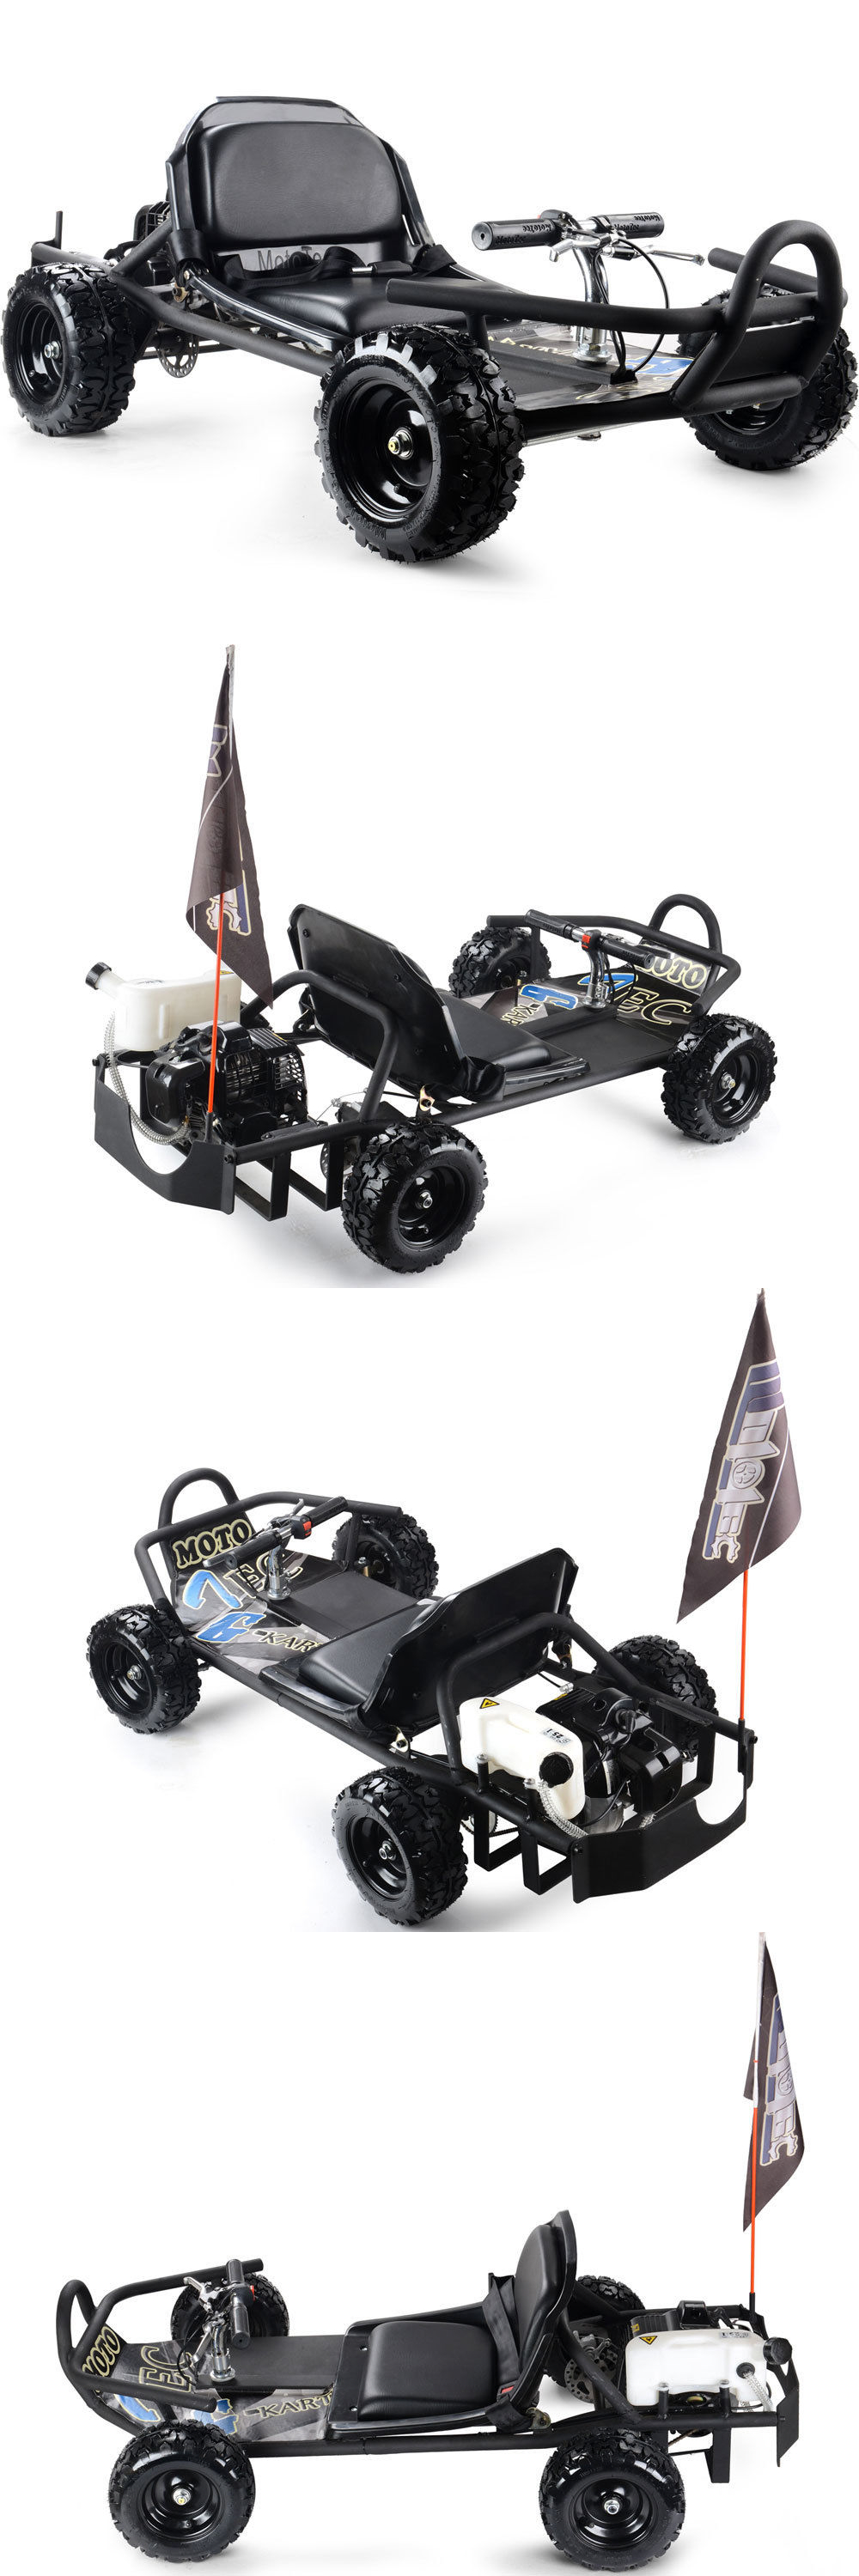 Complete Go-Karts and Frames 64656: 49Cc Gas Powered High Performance Mototec Sandman Go Kart Black Ride On Kids BUY IT NOW ONLY: $624.95